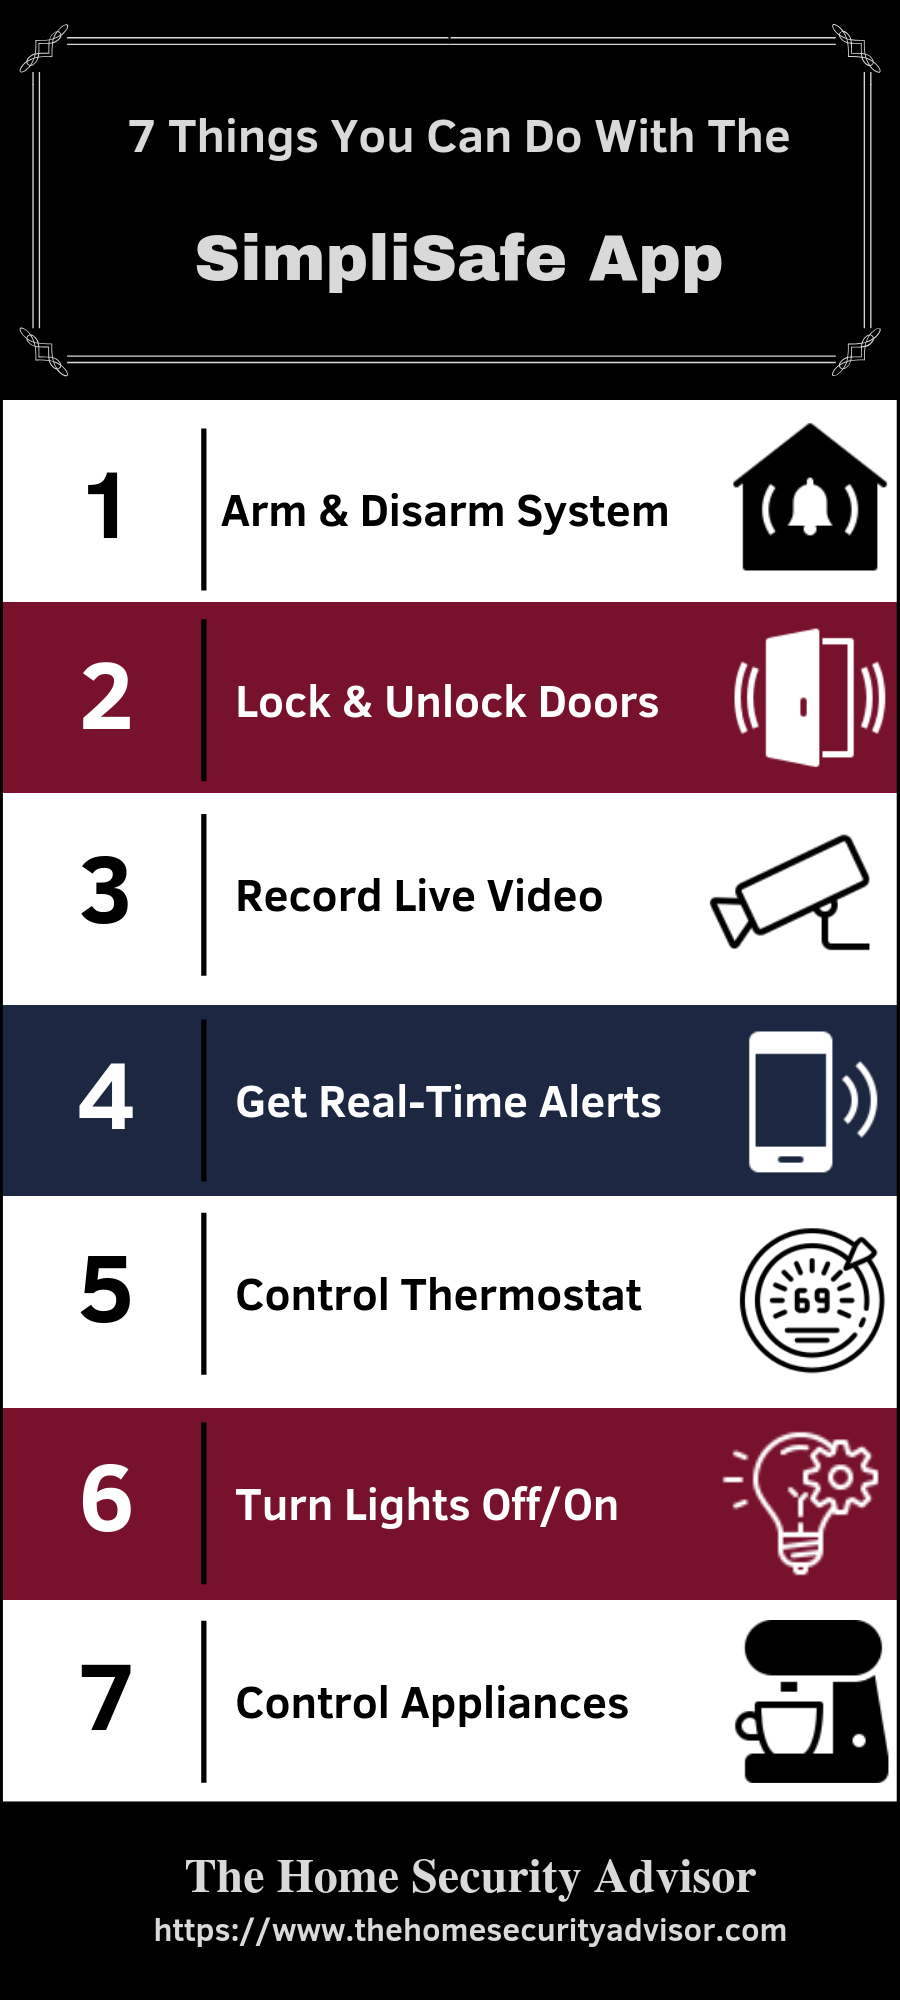 SimpliSafe APP Benefits